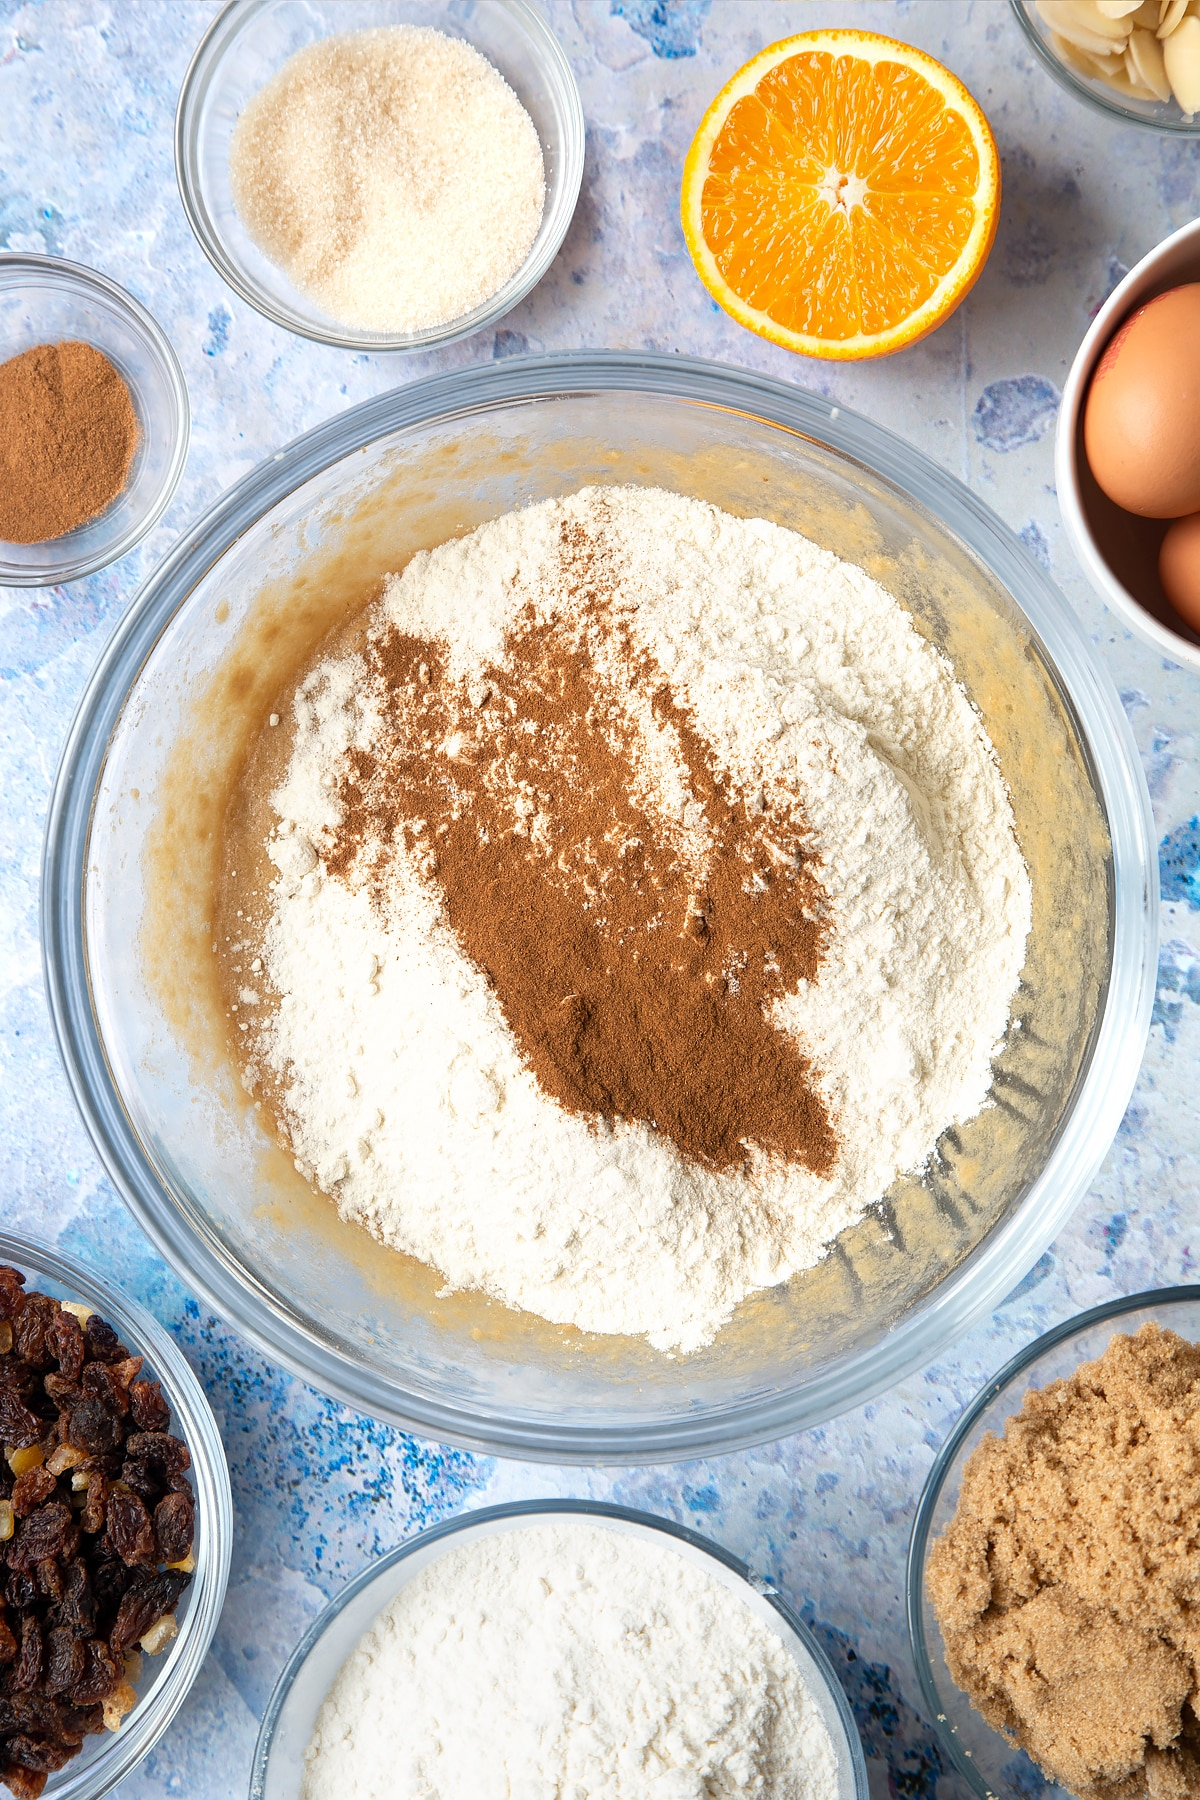 Overhead shot of flour and cinnamon in a large clear bowl